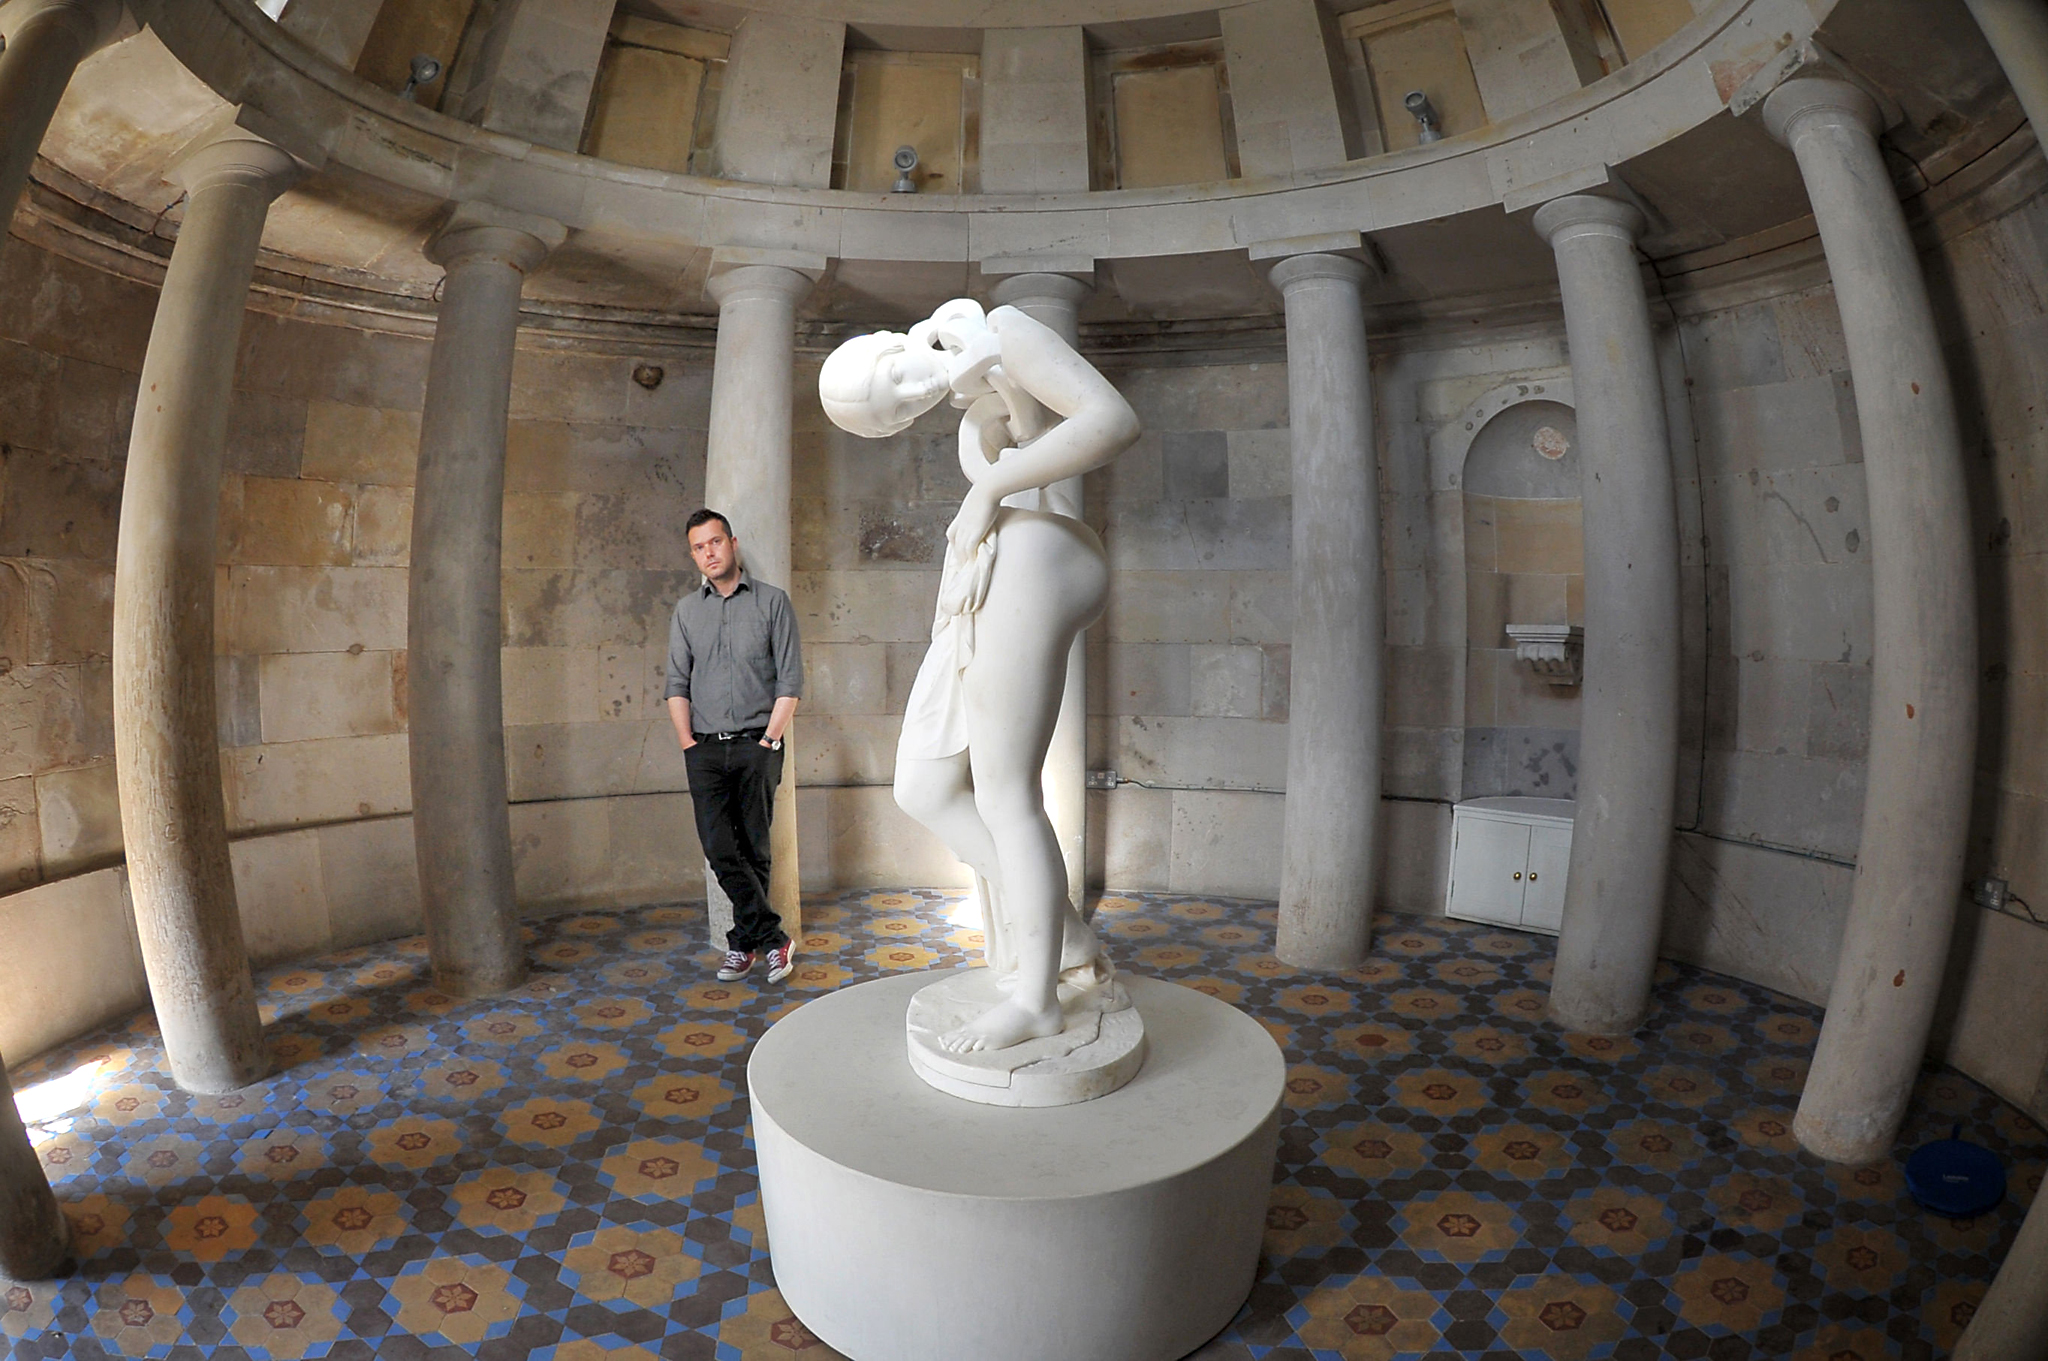 Artist Jonathan Owen unveils a modern interpretation of the female nude, housed in Edinburgh's Burns Monument which is open to the public for the first time in 180 years for the Edinburgh Art Festival 2016. The festival is open to the public between July 28 and August 28. PRESS ASSOCIATION Photo. Picture date: Wednesday July 27, 2016. Photo credit should read: Jane Barlow/PA Wire.